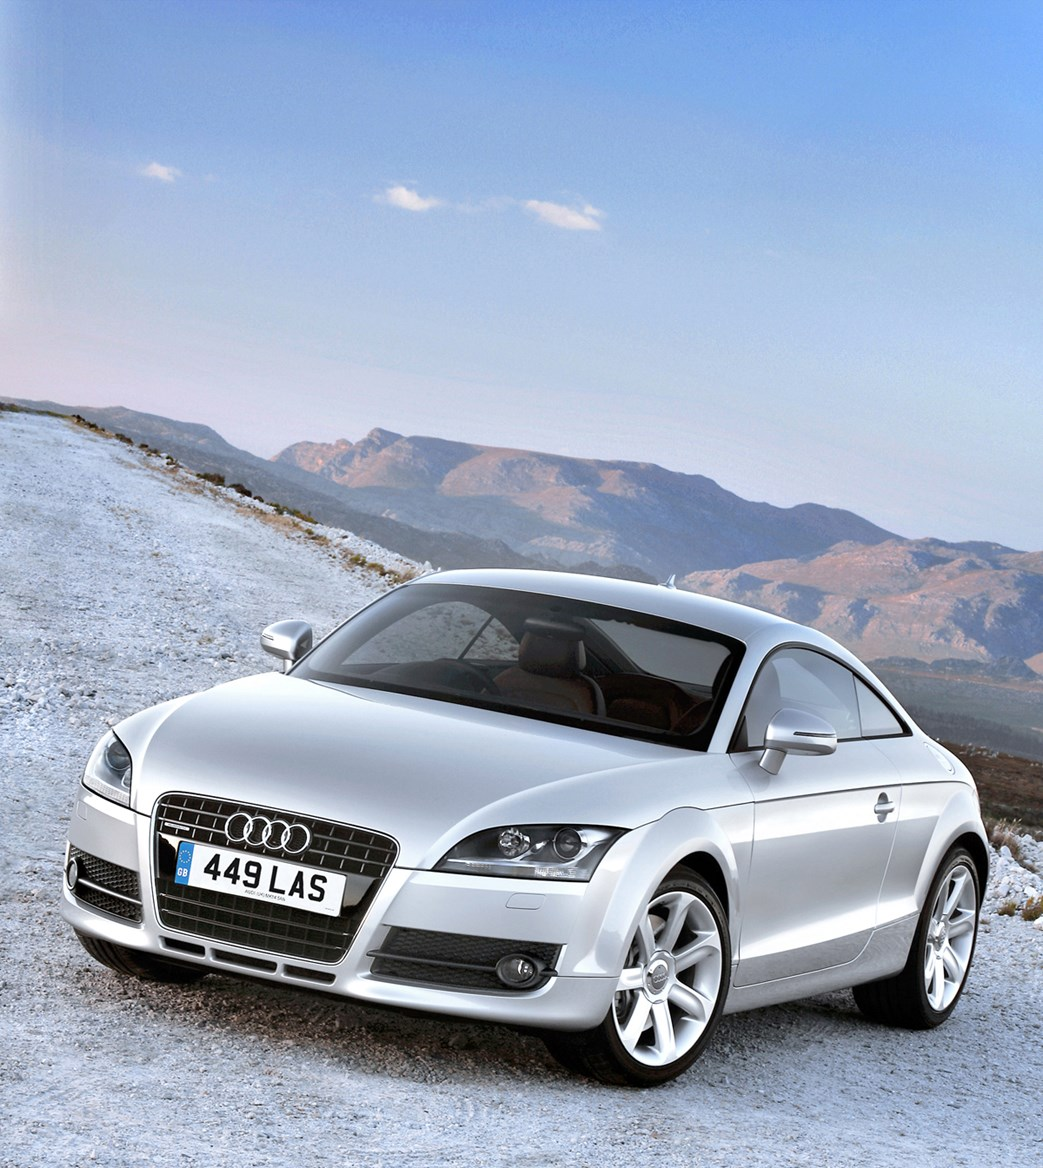 Audi TT Coupé Review (2006 - 2014)